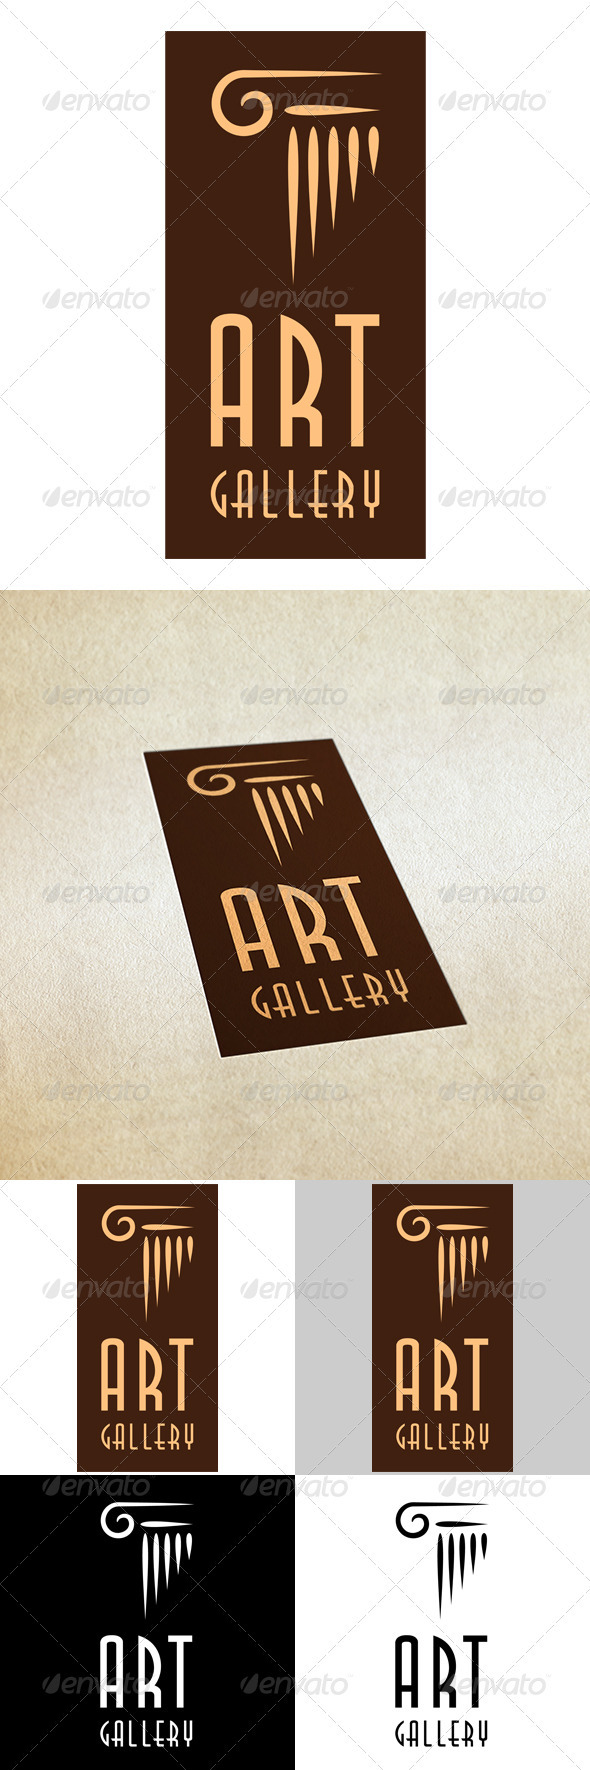 GraphicRiver Art Gallery 3096526